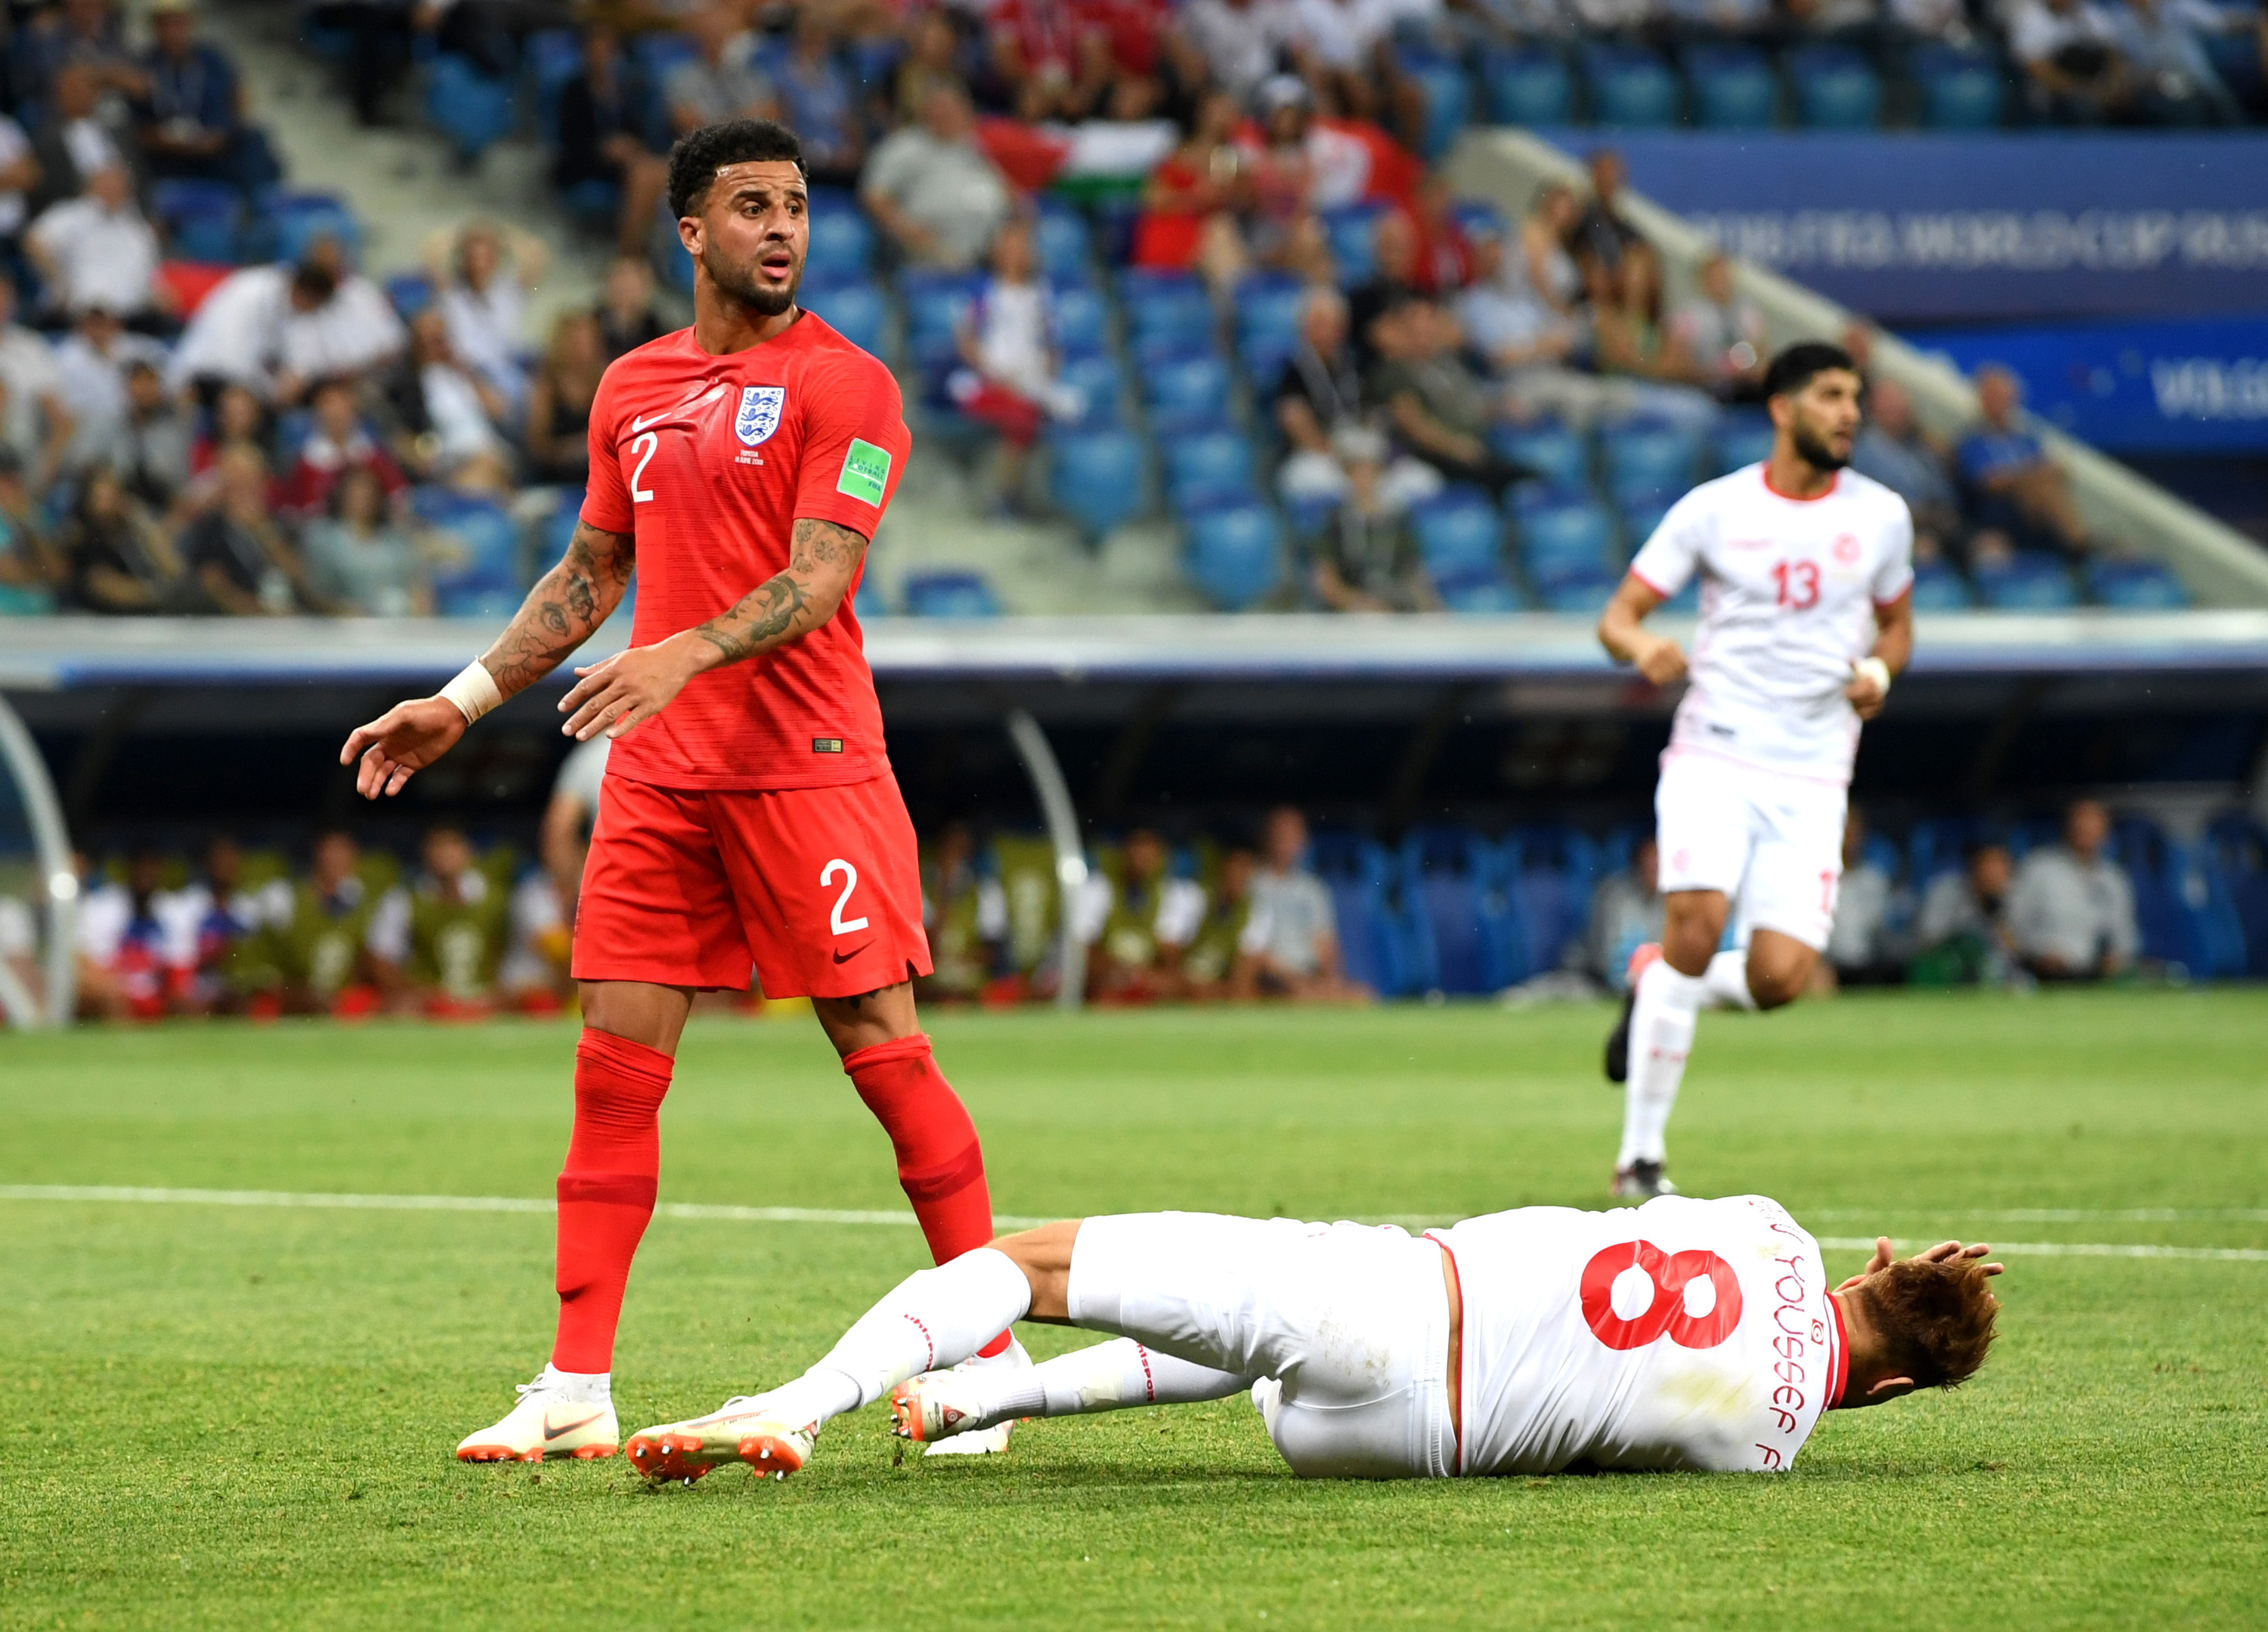 Fakhreddine Ben Youssef of Tunisia goes down in penalty area under challenge from Kyle Walker (Matthias Hangst/Getty Images)